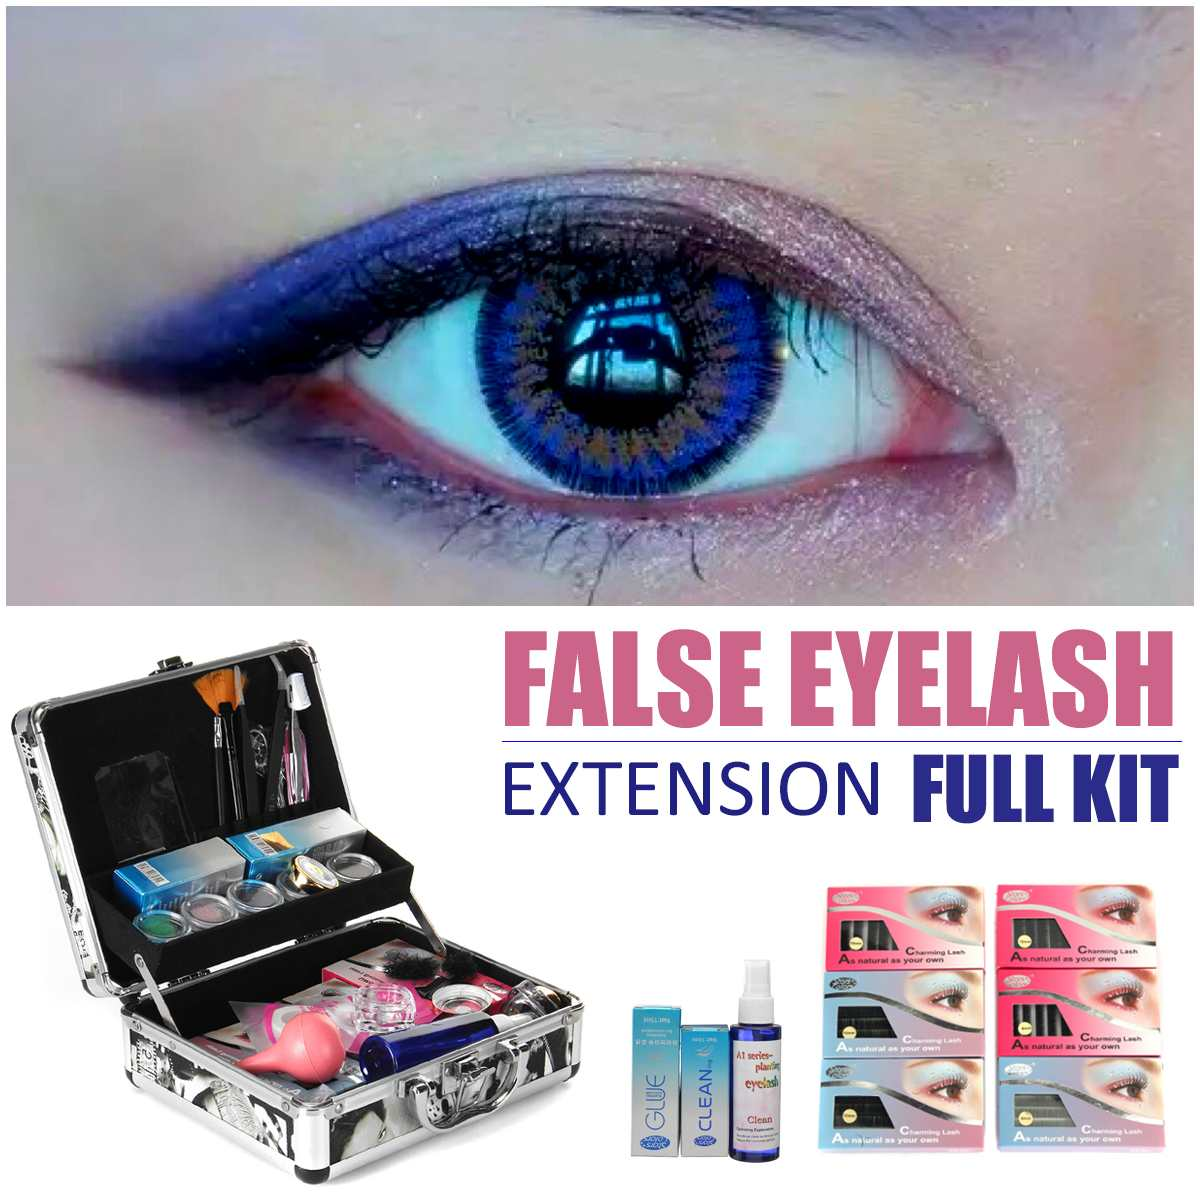 Profession False Eye Lash Salon Eyelash Extension Glue Tools Set Full Kit Makeup Case Set Eyelashes Extension Kit 2017 new double layer beauty grafting salon makeup tools false extension eyelash glue brush kit set eyelashes women beauty tool